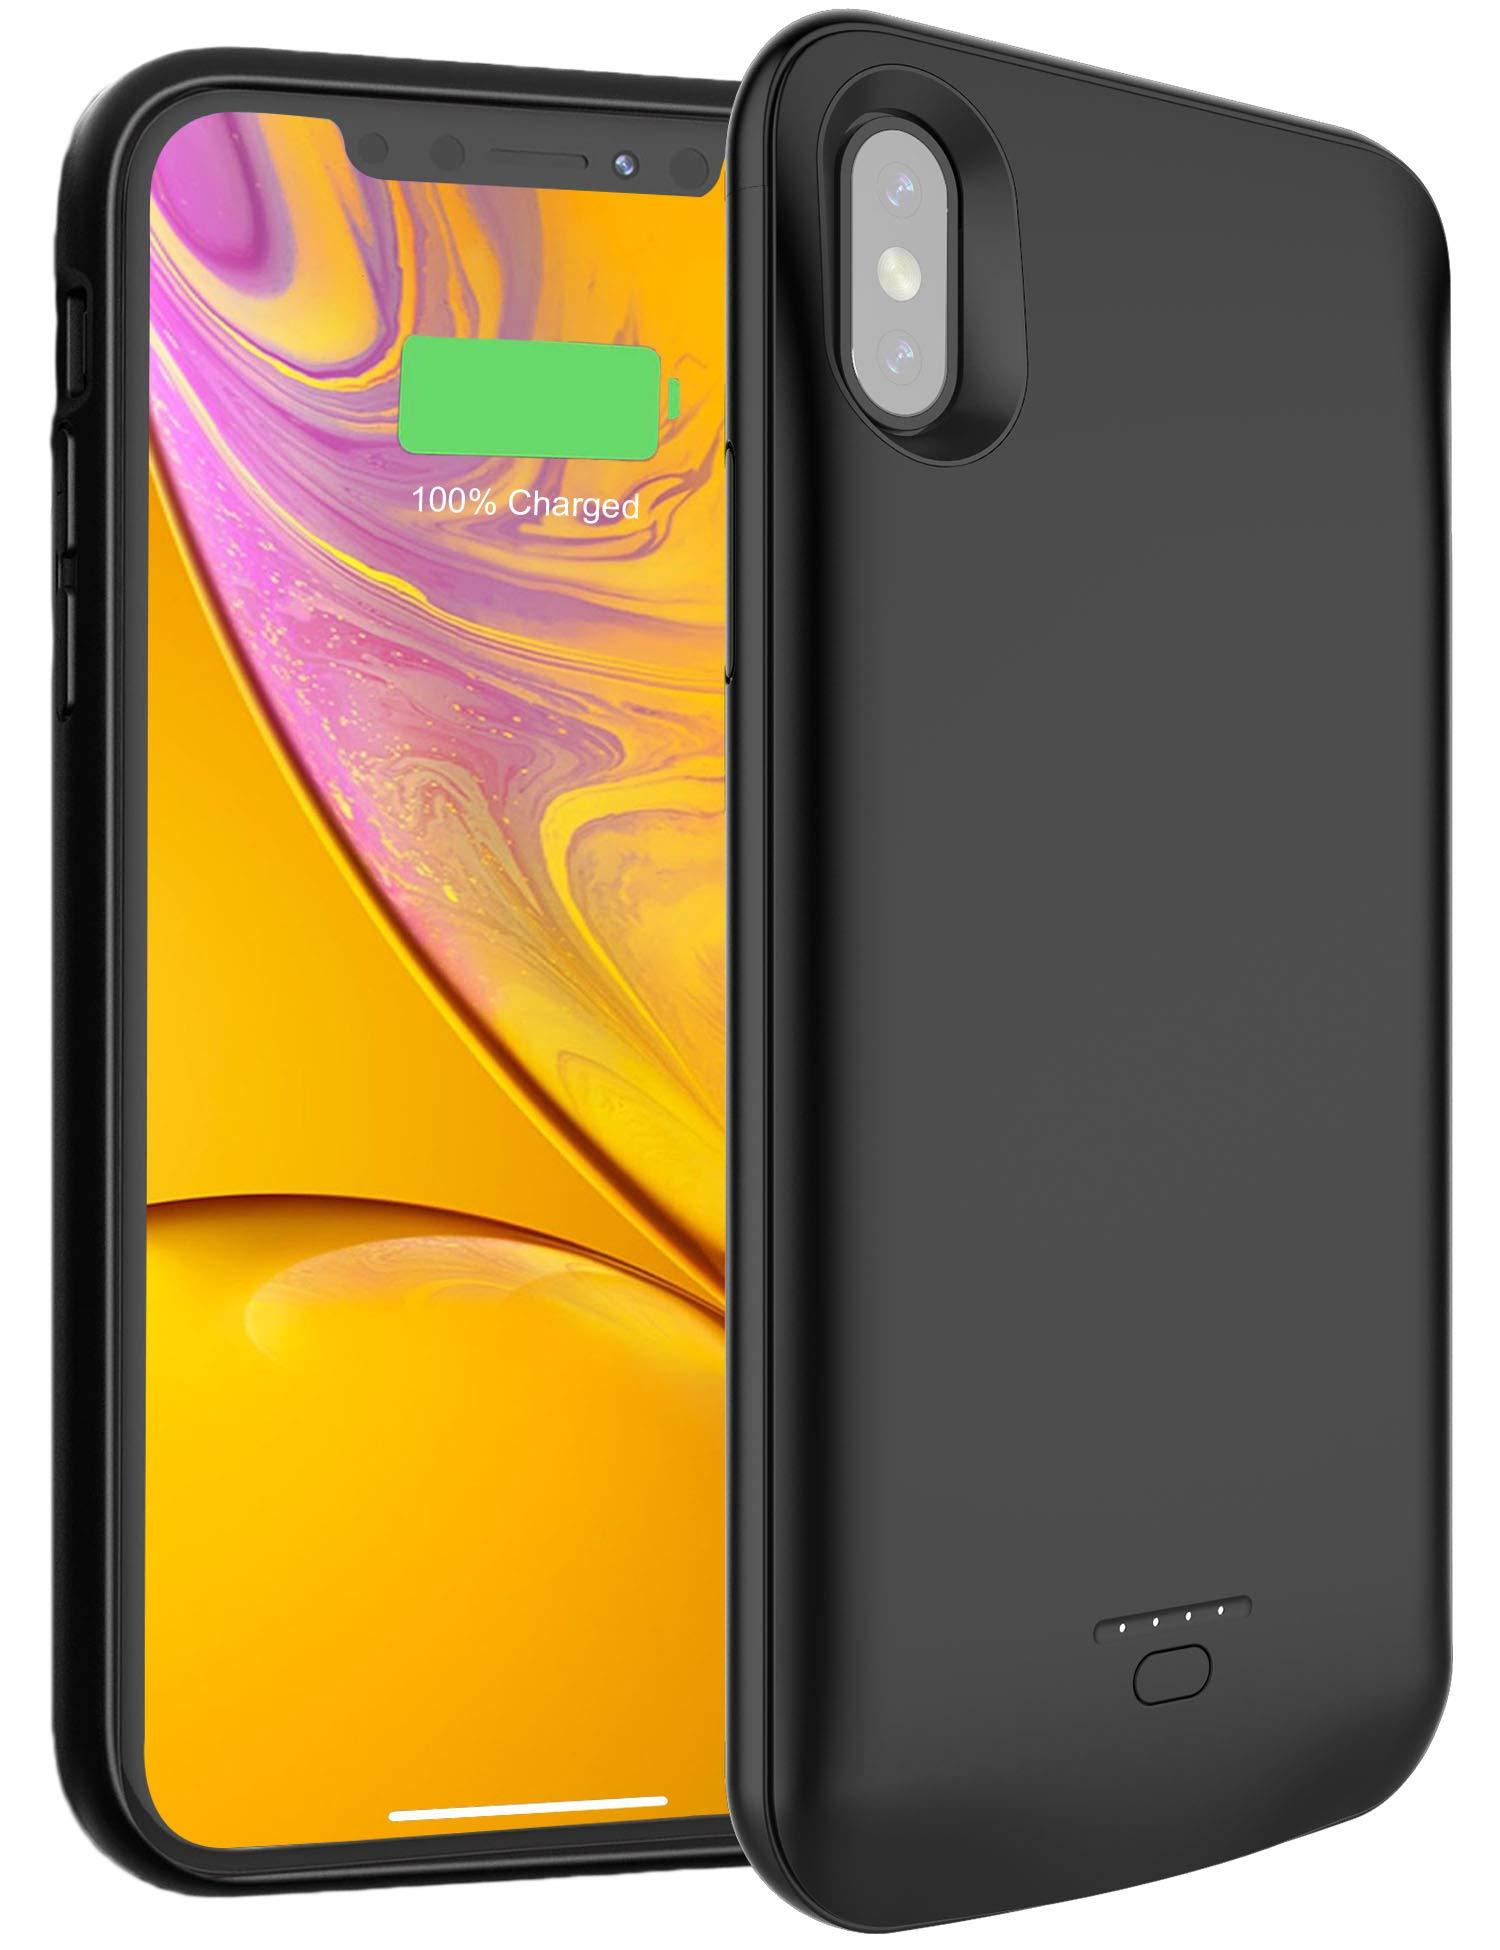 TREEZITEK Battery Case for iPhone X iXs,4000mAh Portable Protective Charging Case Extended Rechargeable Battery Pack Charger Case Compatible with iPhone Xs iX,Black